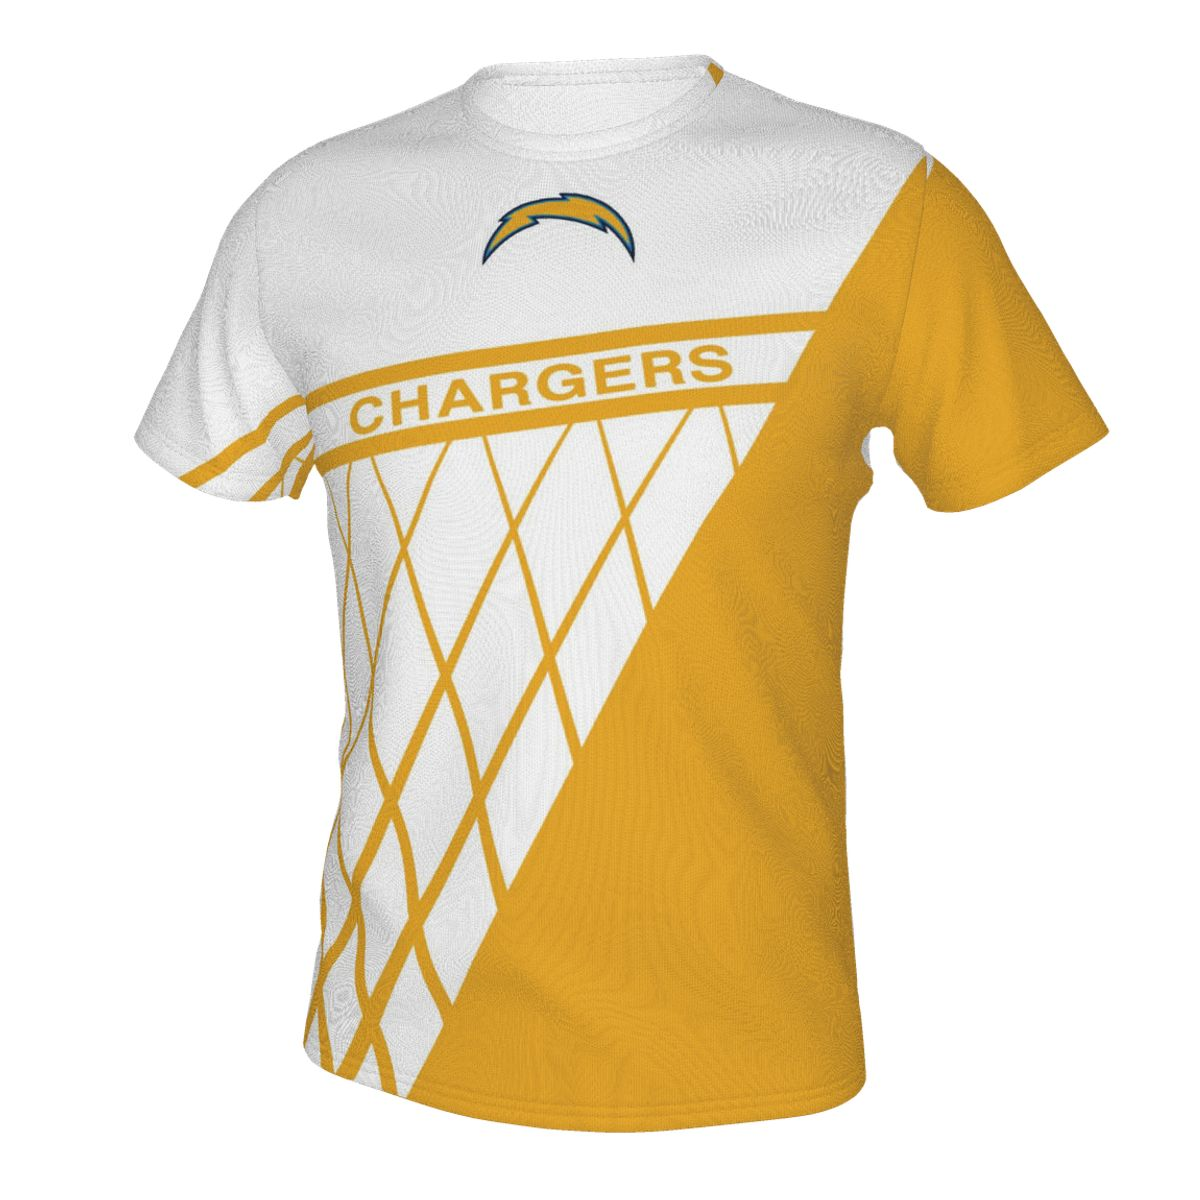 CHARGERS T-shirts For Men